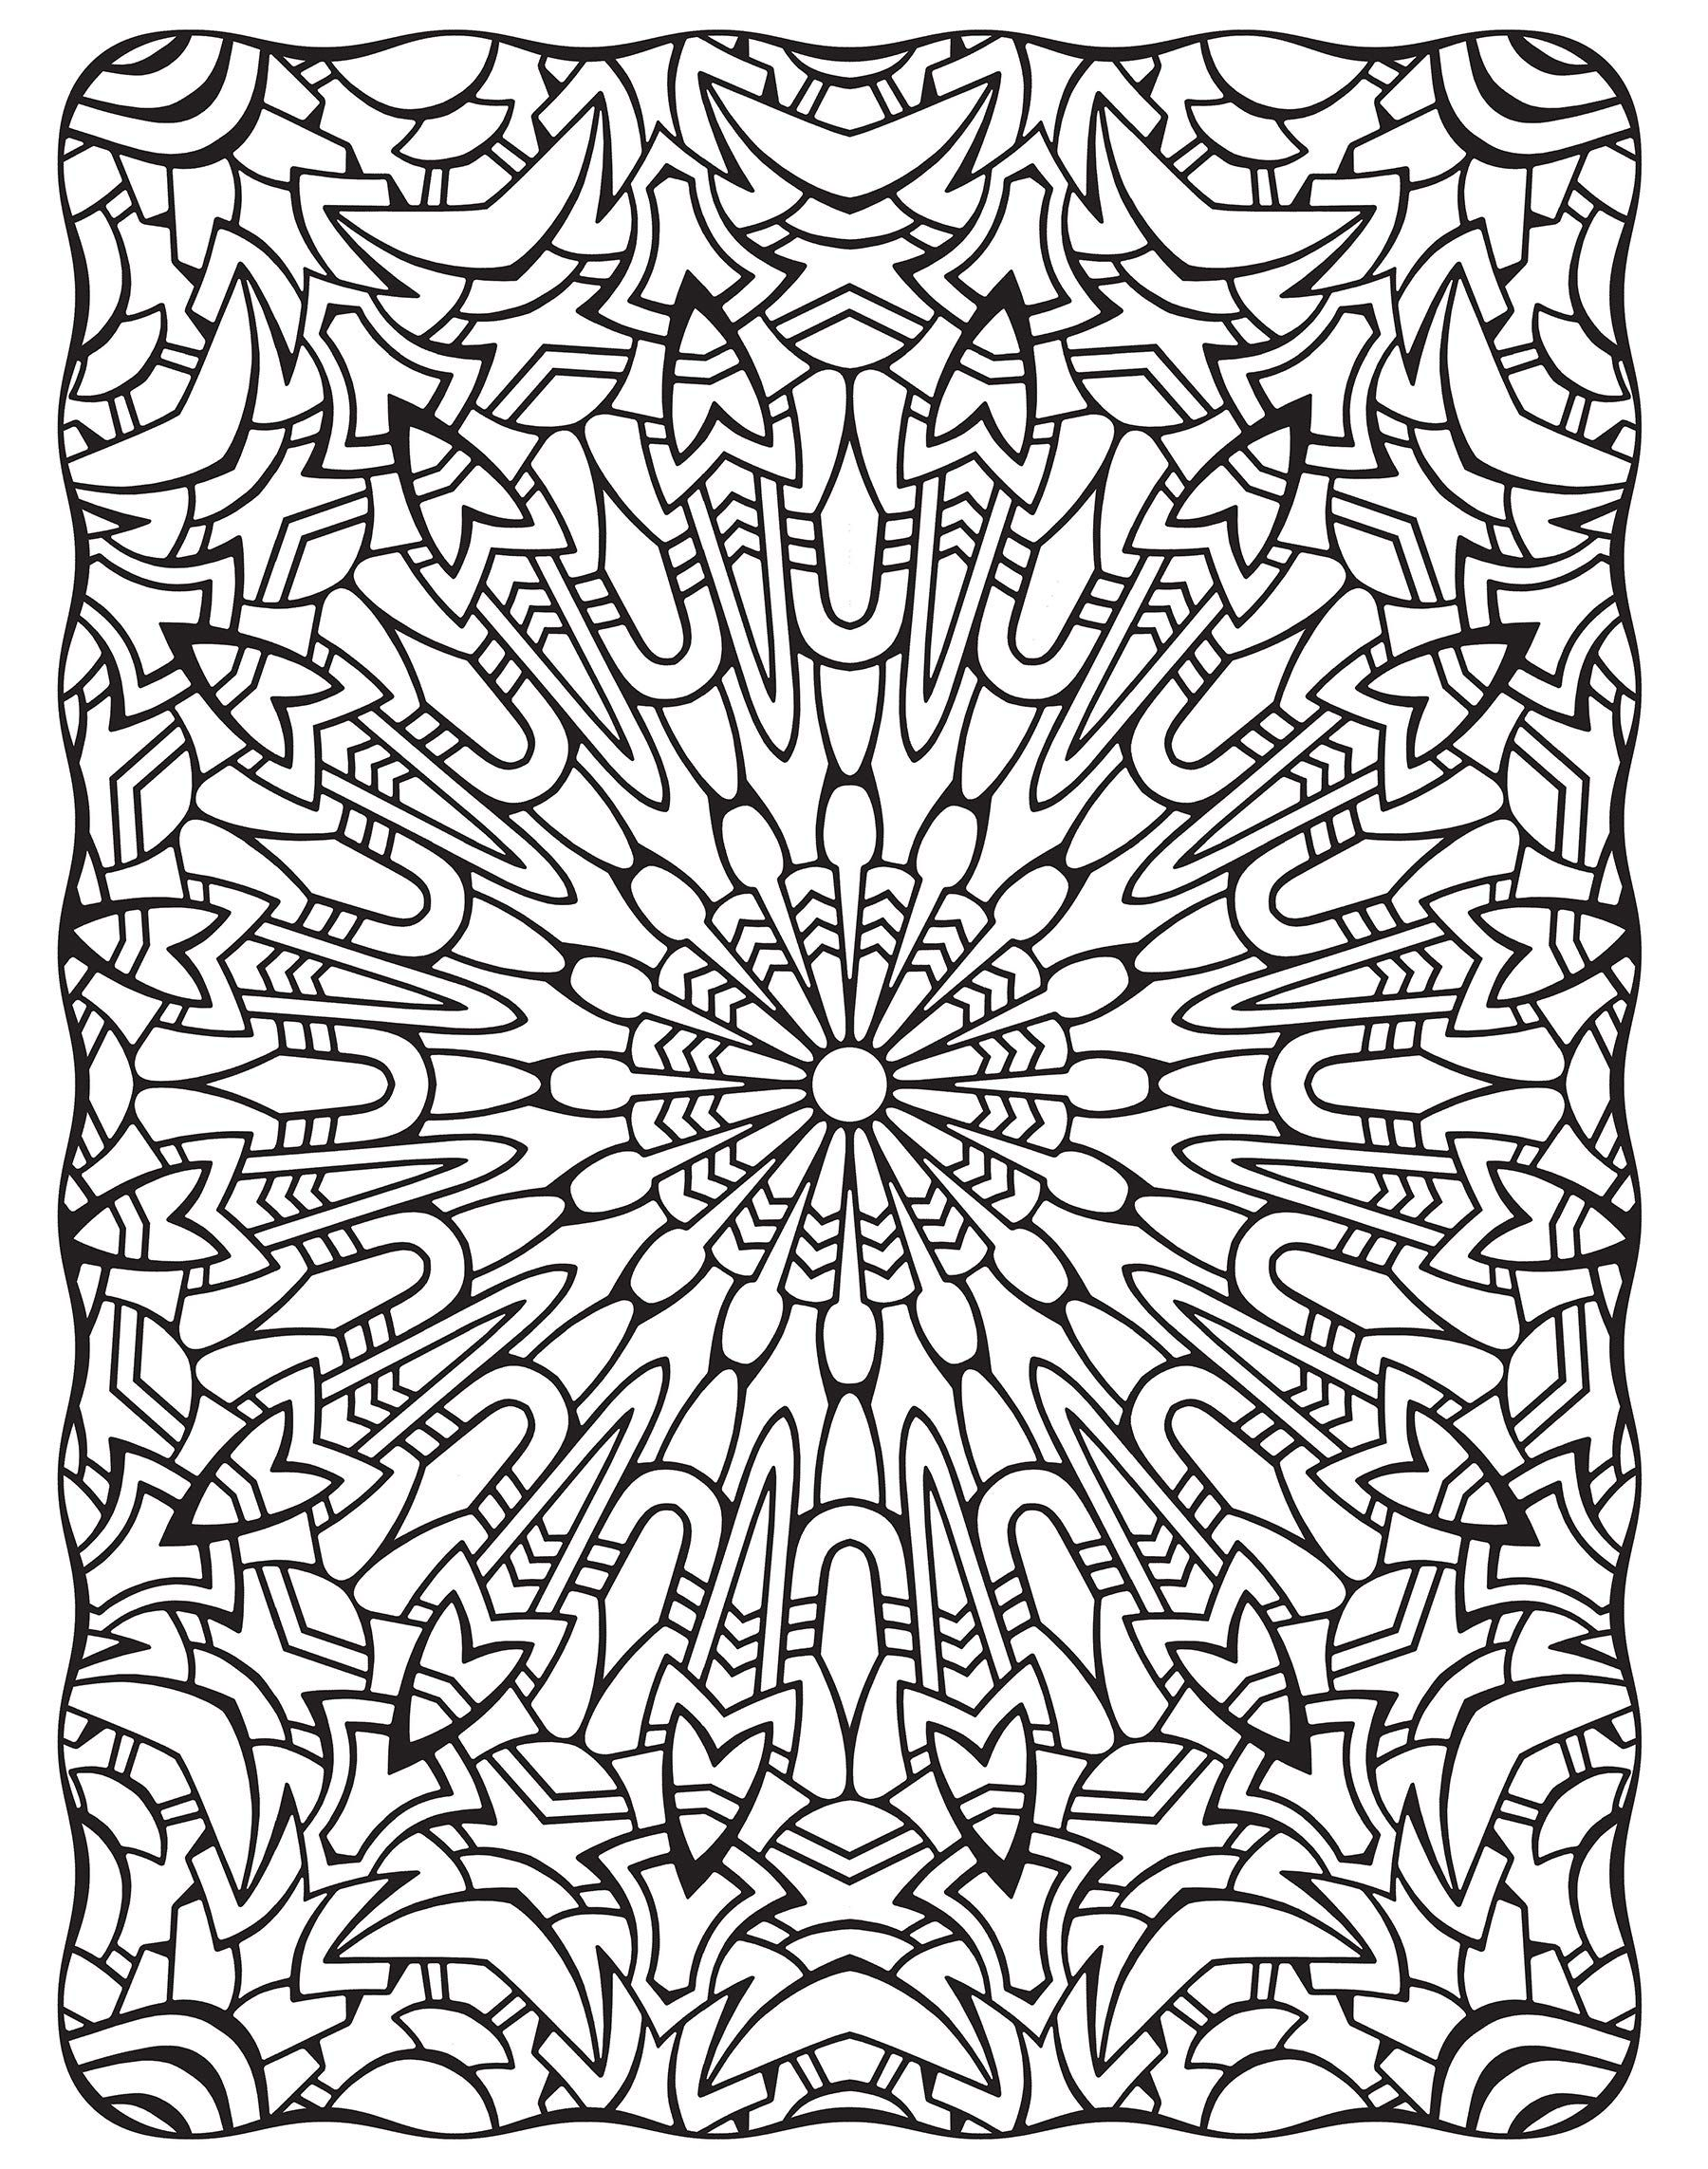 Amazon Com Creative Haven Dimensions Coloring Book Creative Haven Coloring Books 97 Abstract Coloring Pages Geometric Coloring Pages Mandala Coloring Pages